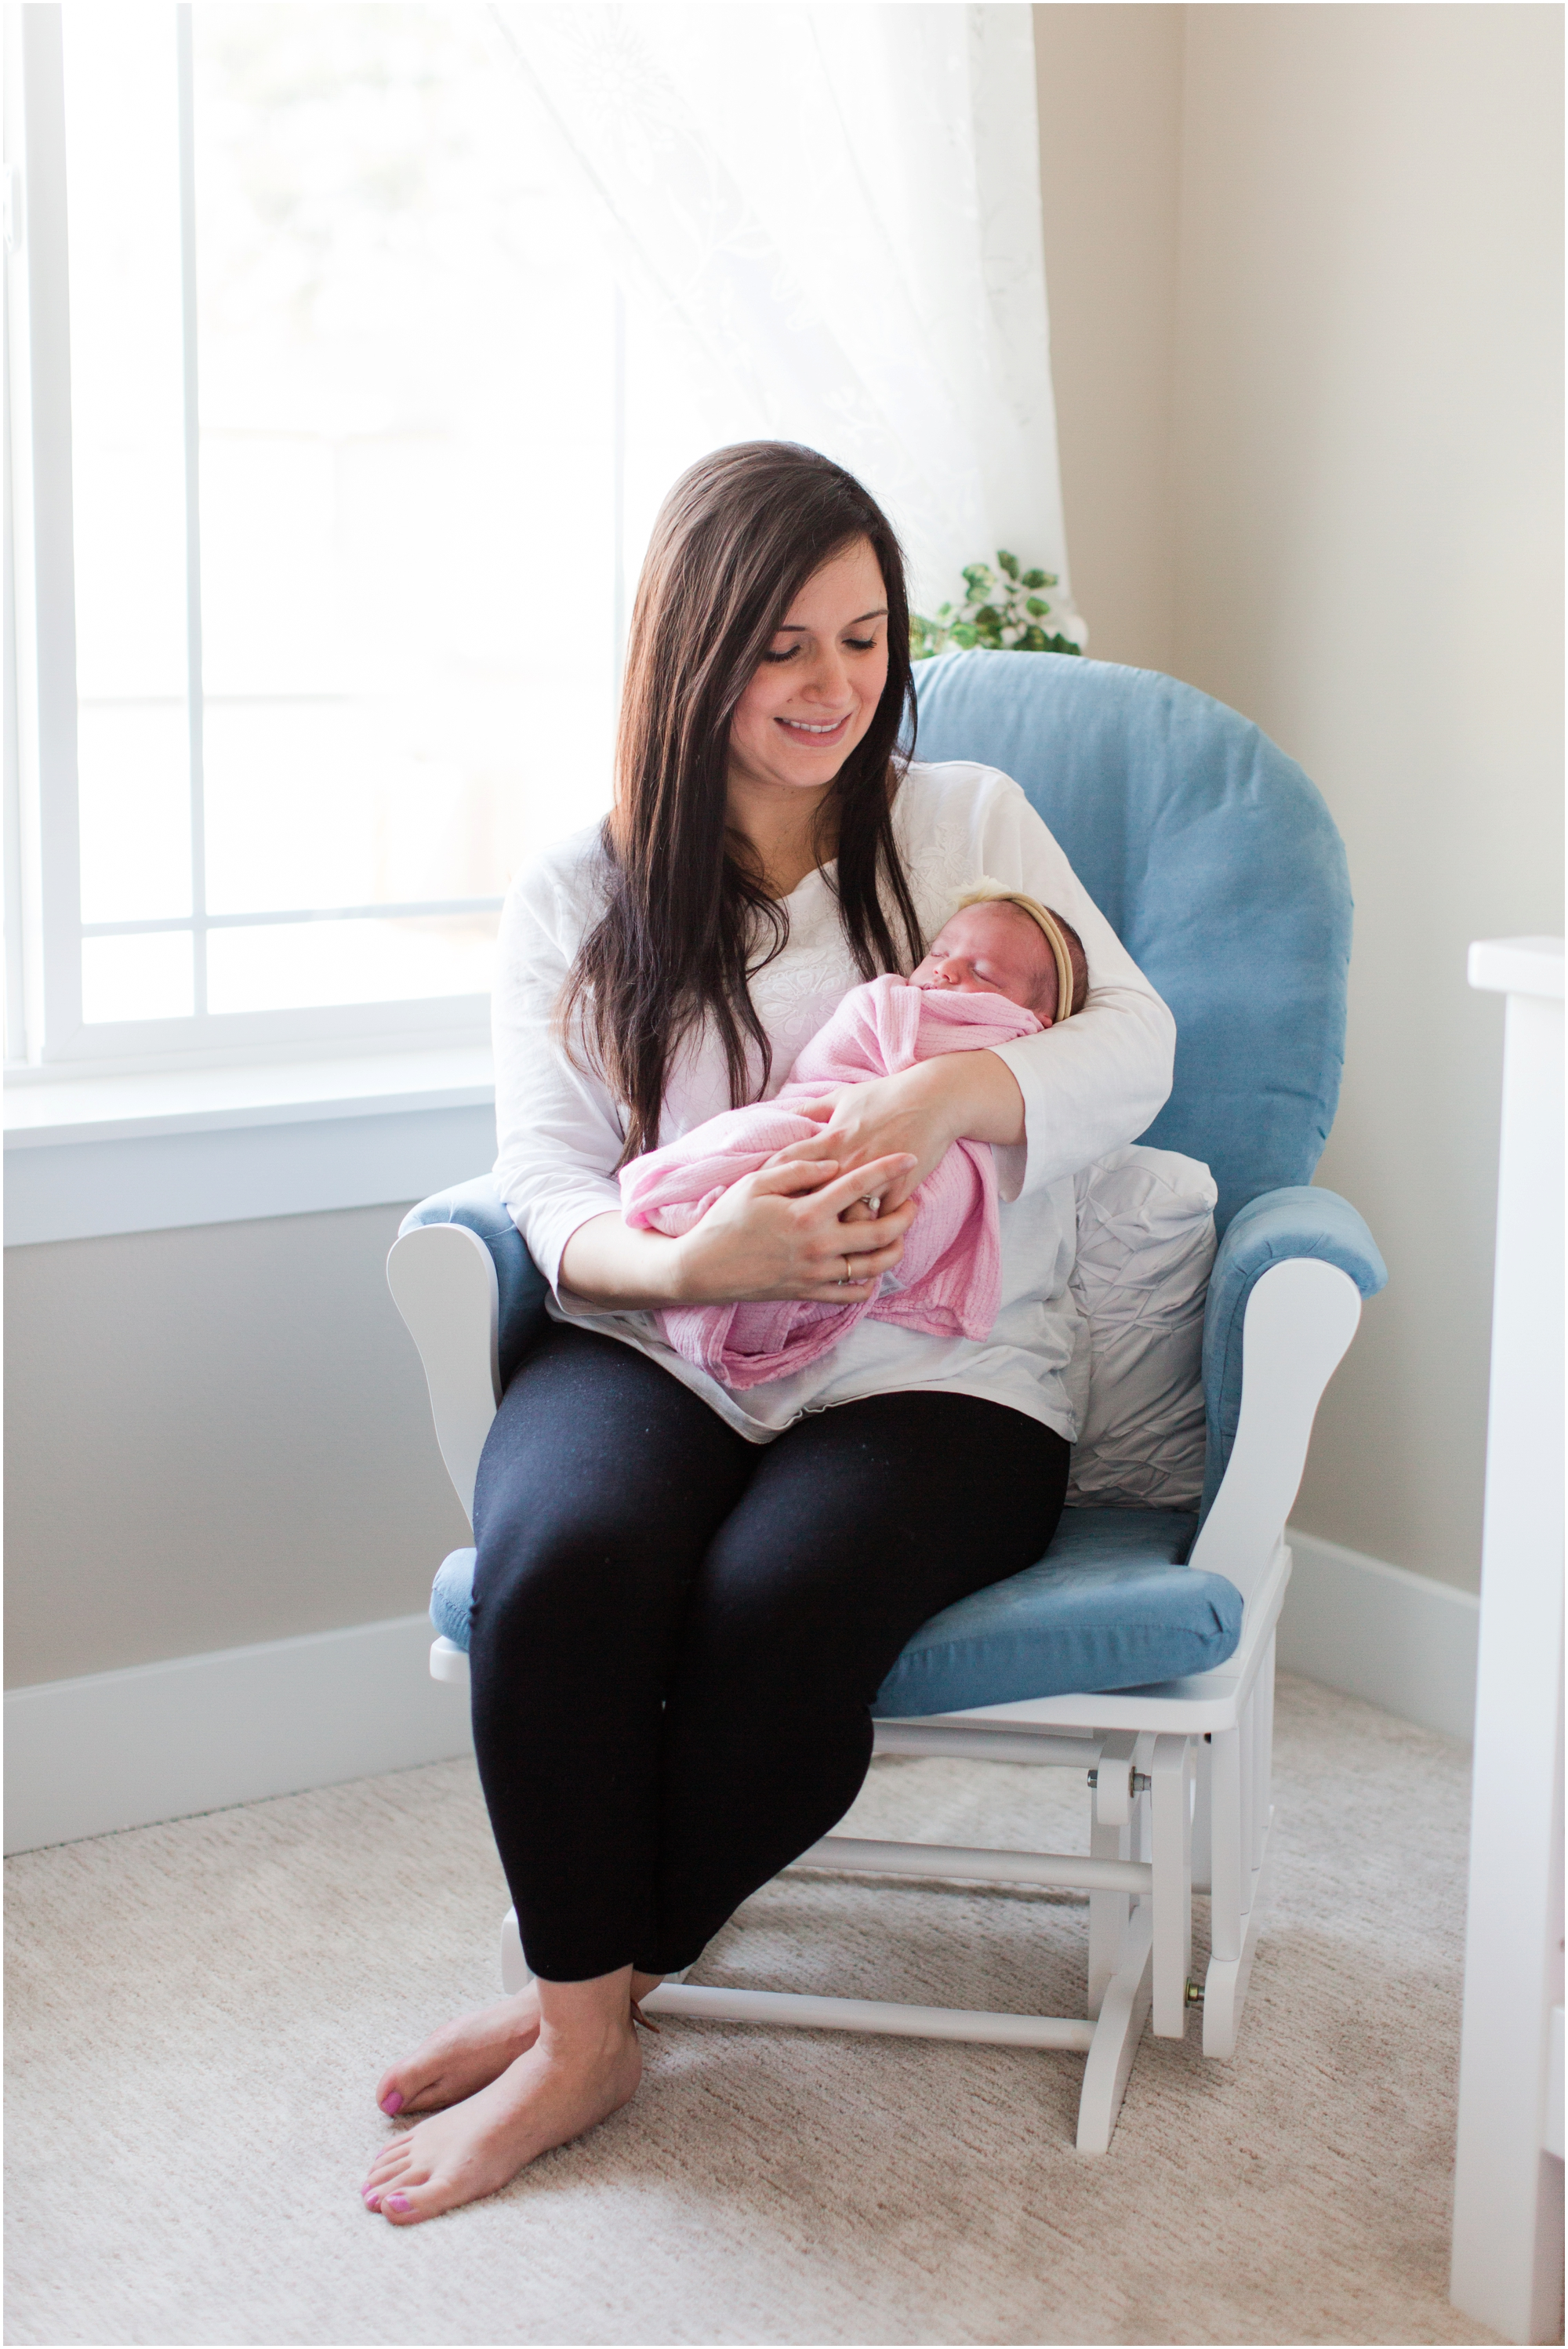 Lifestyle newborn photos by Briana Calderon Photography based in the Greater Seattle & Tacoma, WA_1075.jpg